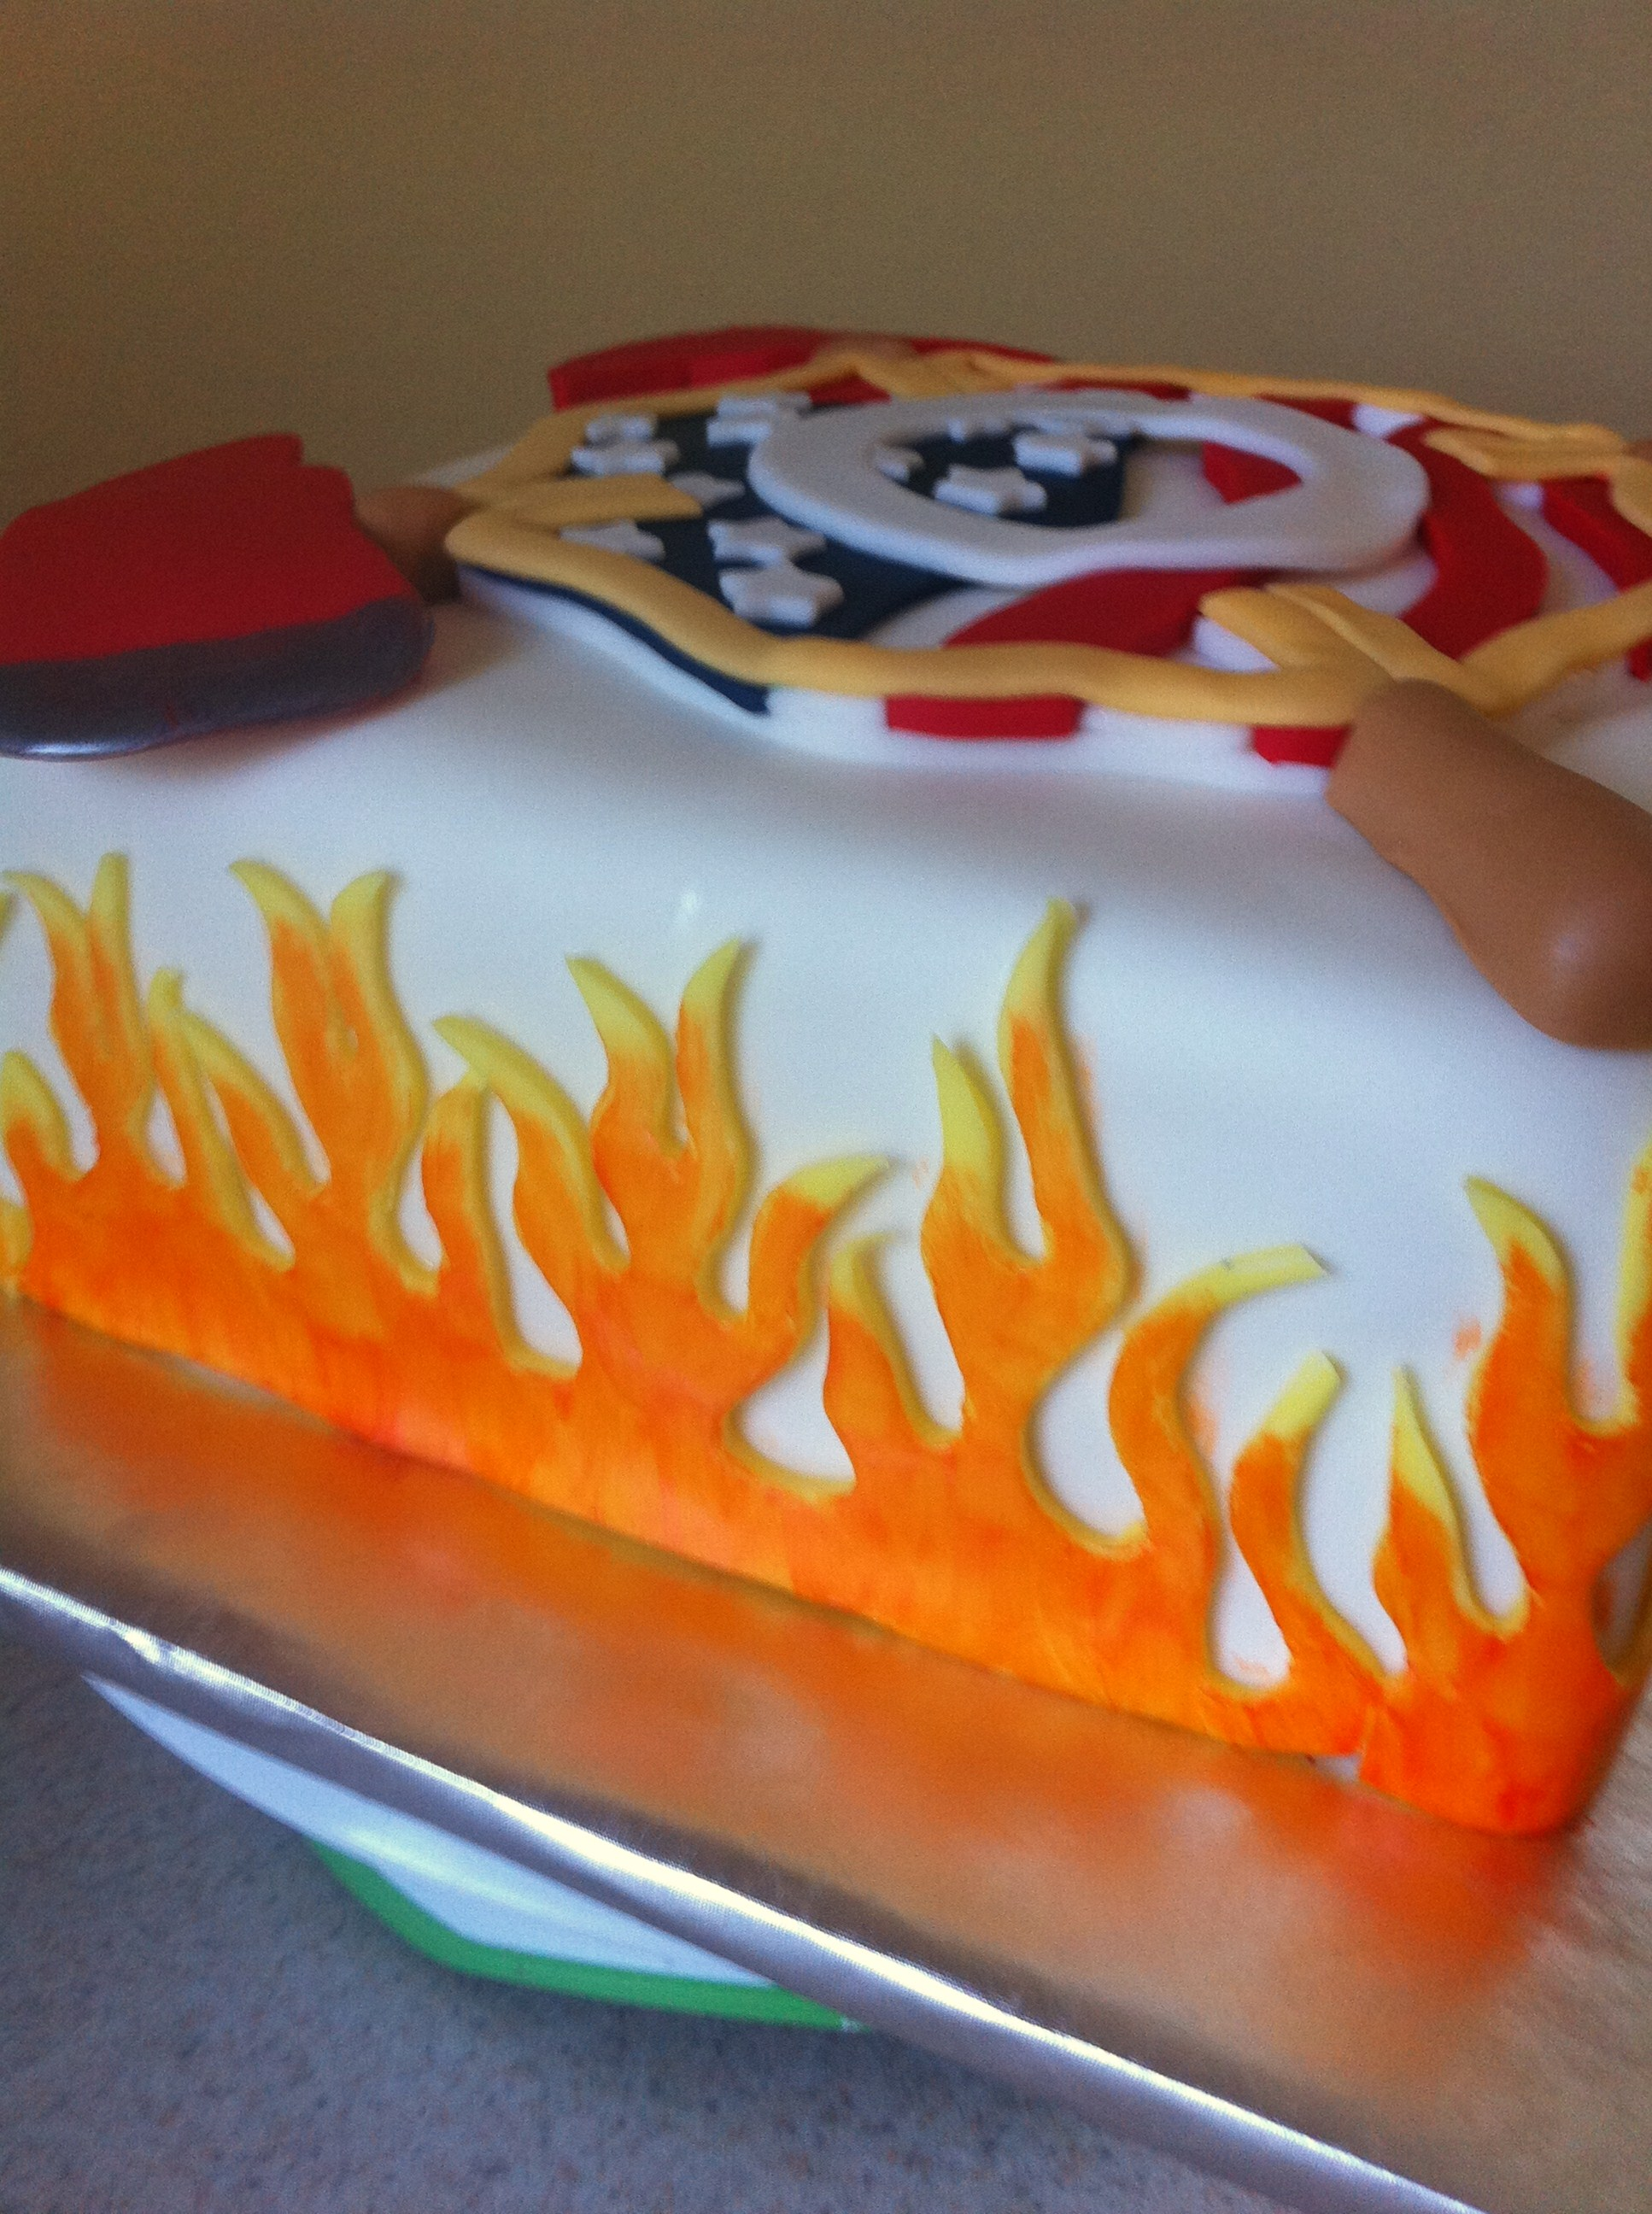 Prime 11 Teen Boy Birthday Cakes With Flames Photo Teenage Boy Personalised Birthday Cards Veneteletsinfo